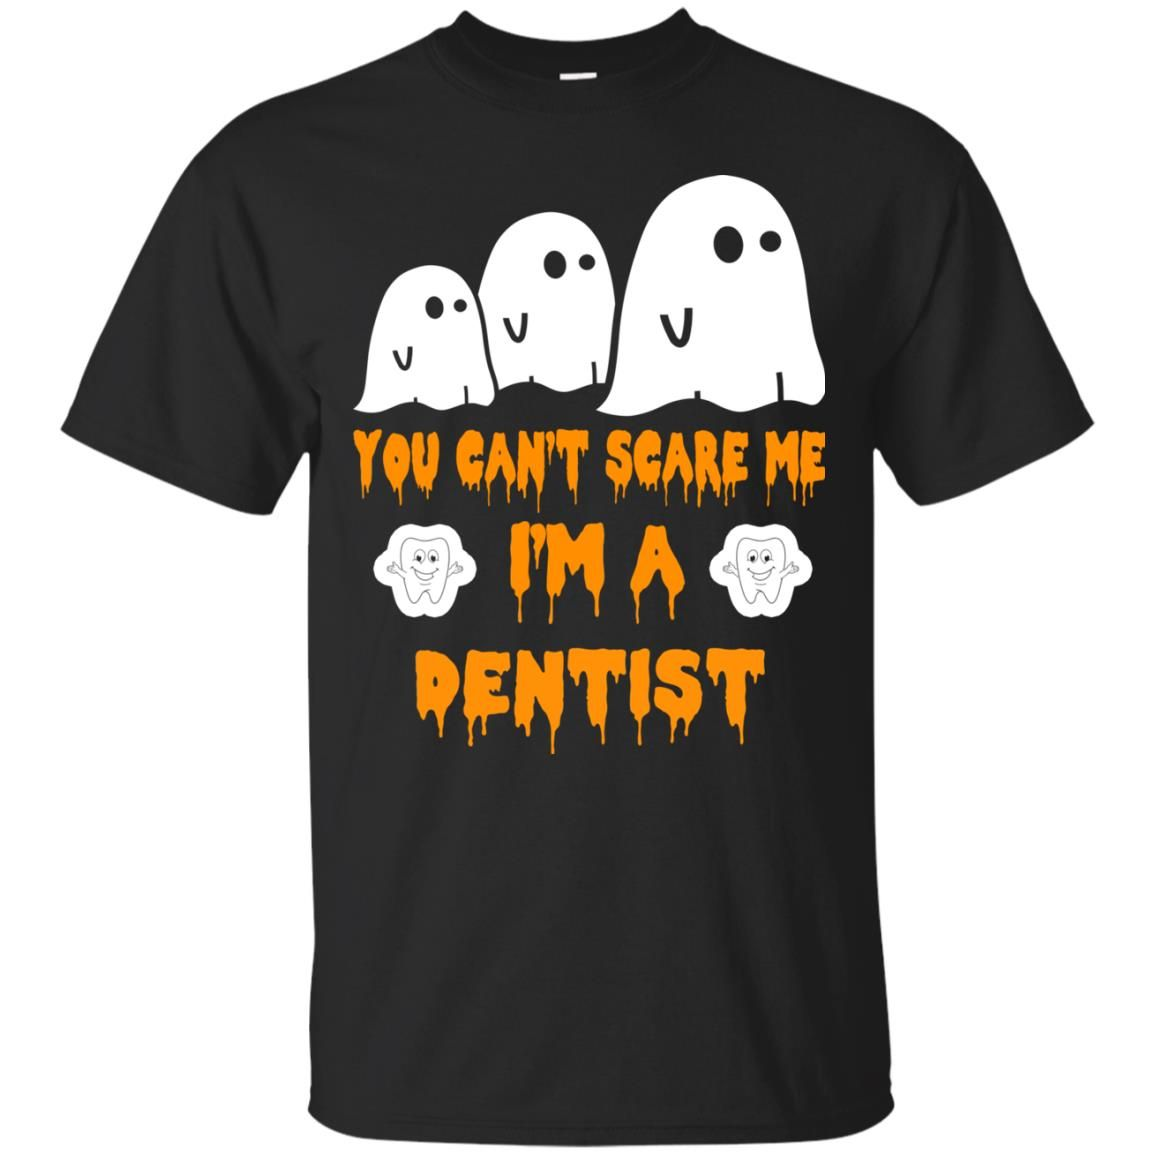 image 462 - You can't scare me I'm a Dentist shirt, hoodie, tank